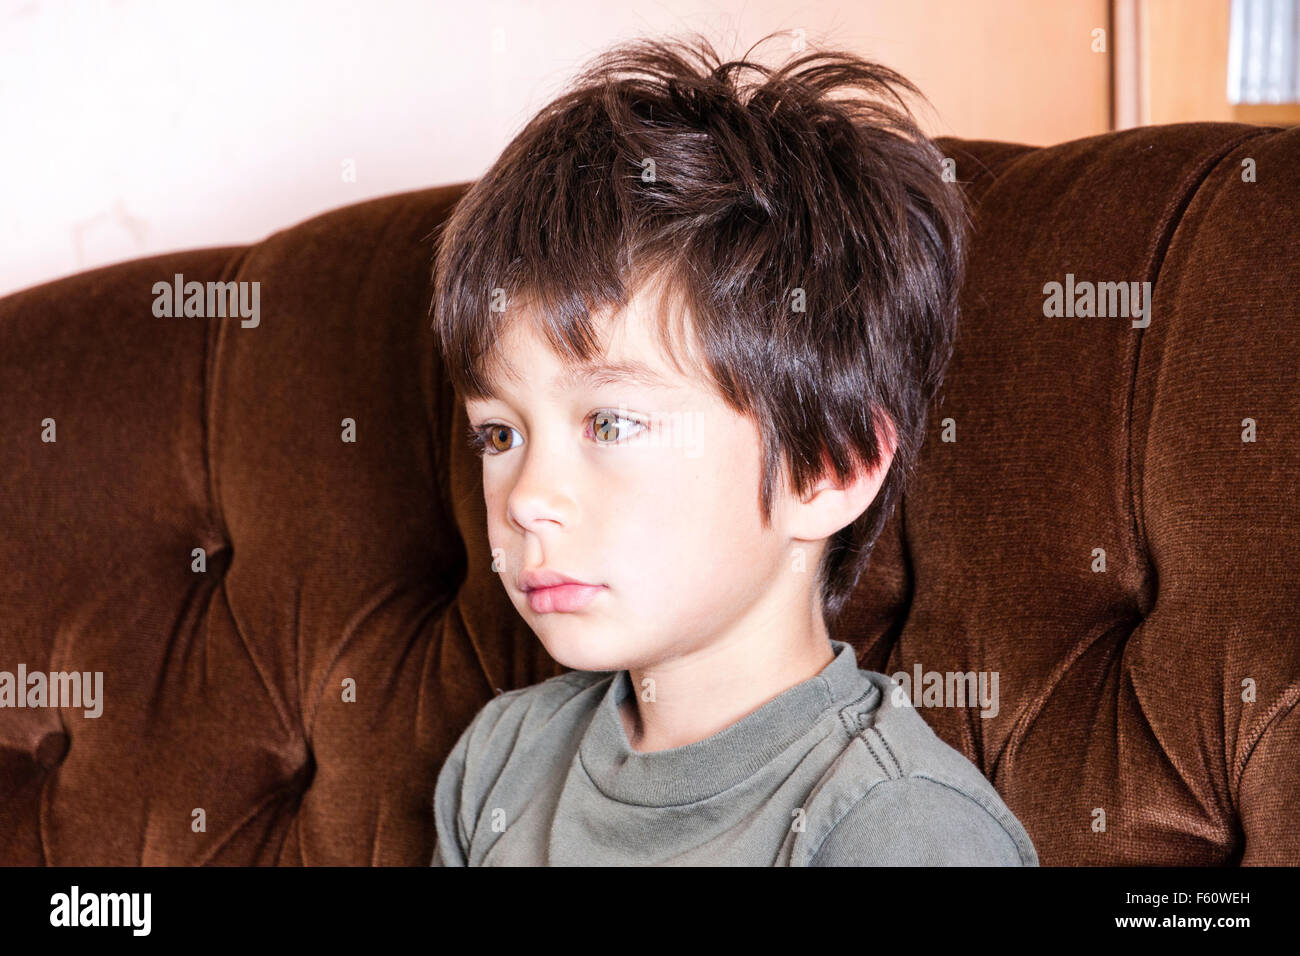 Brown haired Caucasian child, boy, 6-8 year old. Head shot, interior. Sitting on settee, sad lonely miserable expression, - Stock Image